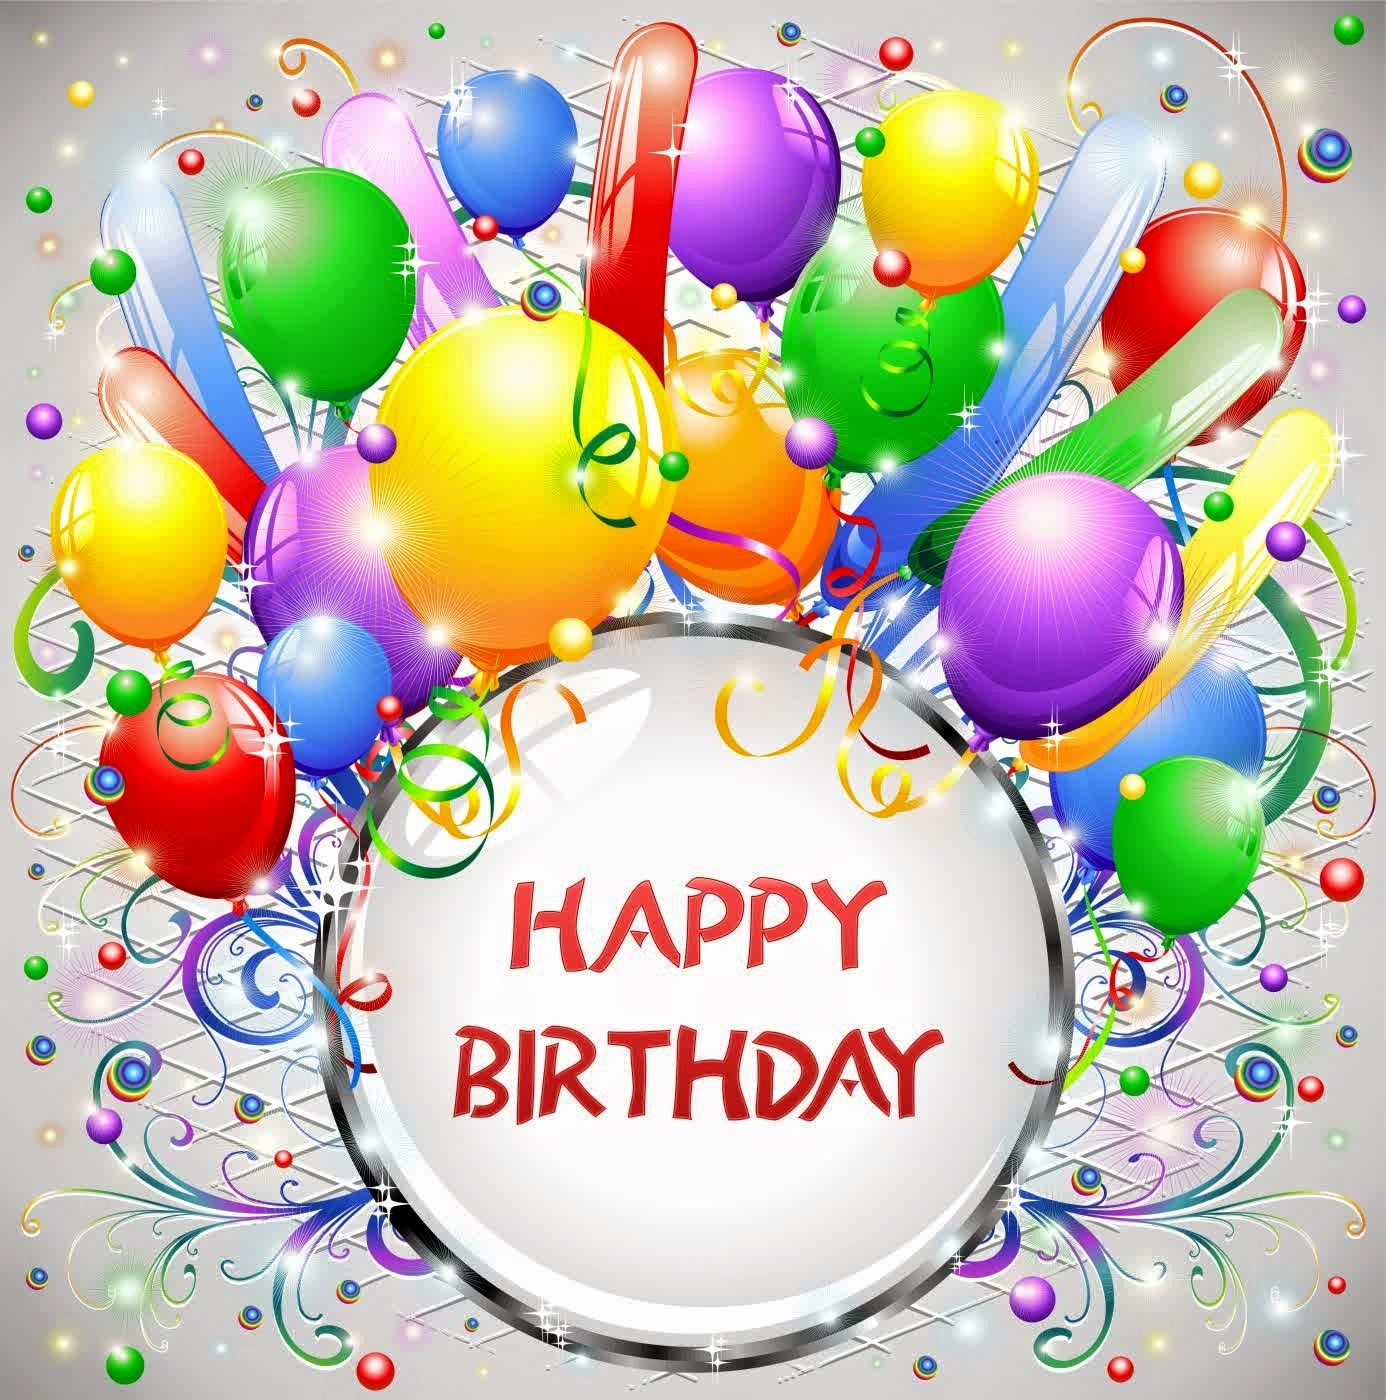 card making websites for free birthday ; card-making-websites-for-free-birthday-new-birthday-card-beautiful-free-birthday-card-free-greeting-of-card-making-websites-for-free-birthday